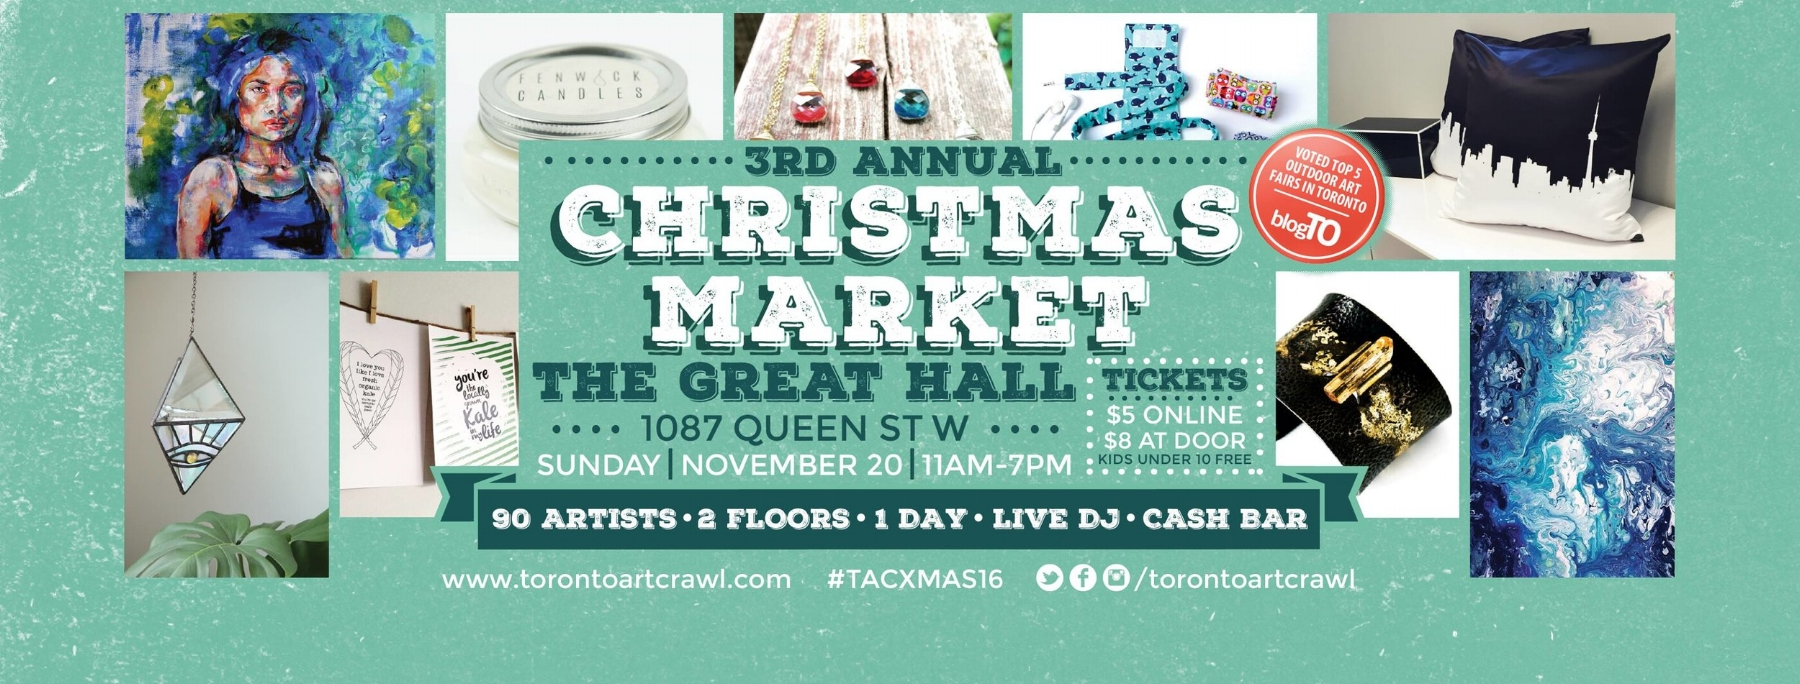 Top 10 Things To Do at the Toronto Art Crawl Christmas Market